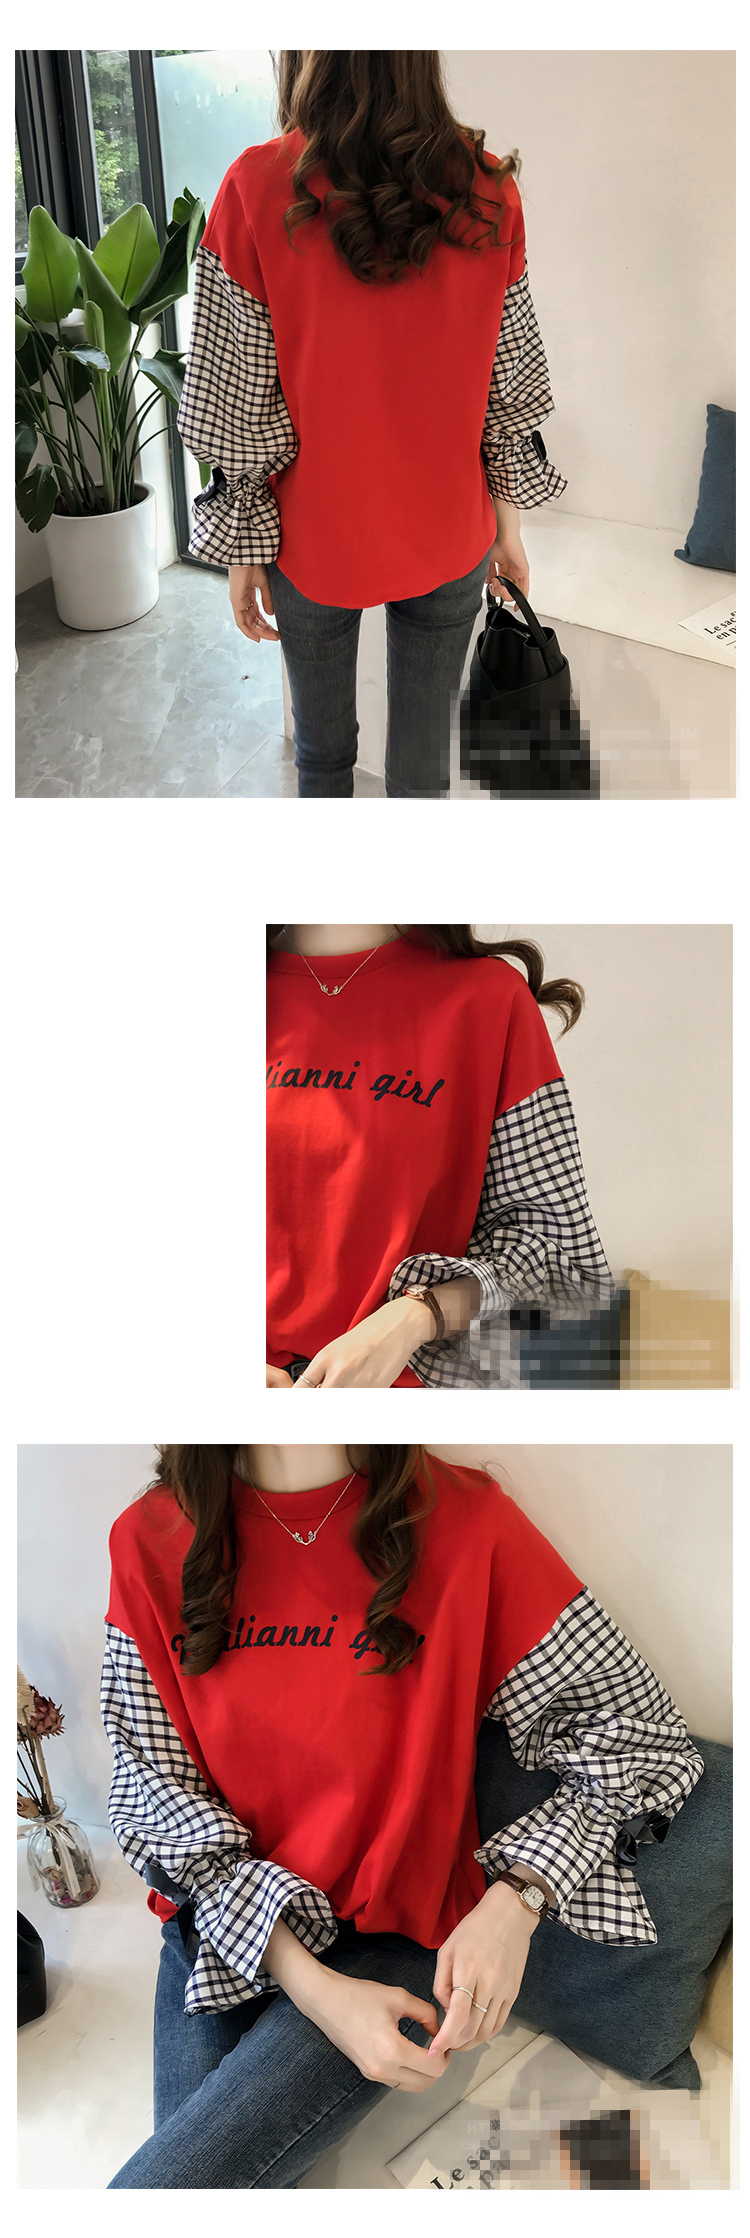 M-4xl Plus Size Cotton Casual T-shirts Women Plaid Patchwork Flare Sleeve O-neck Tshirts Harajuku Fake Two Piece Loose Tees Tops 10